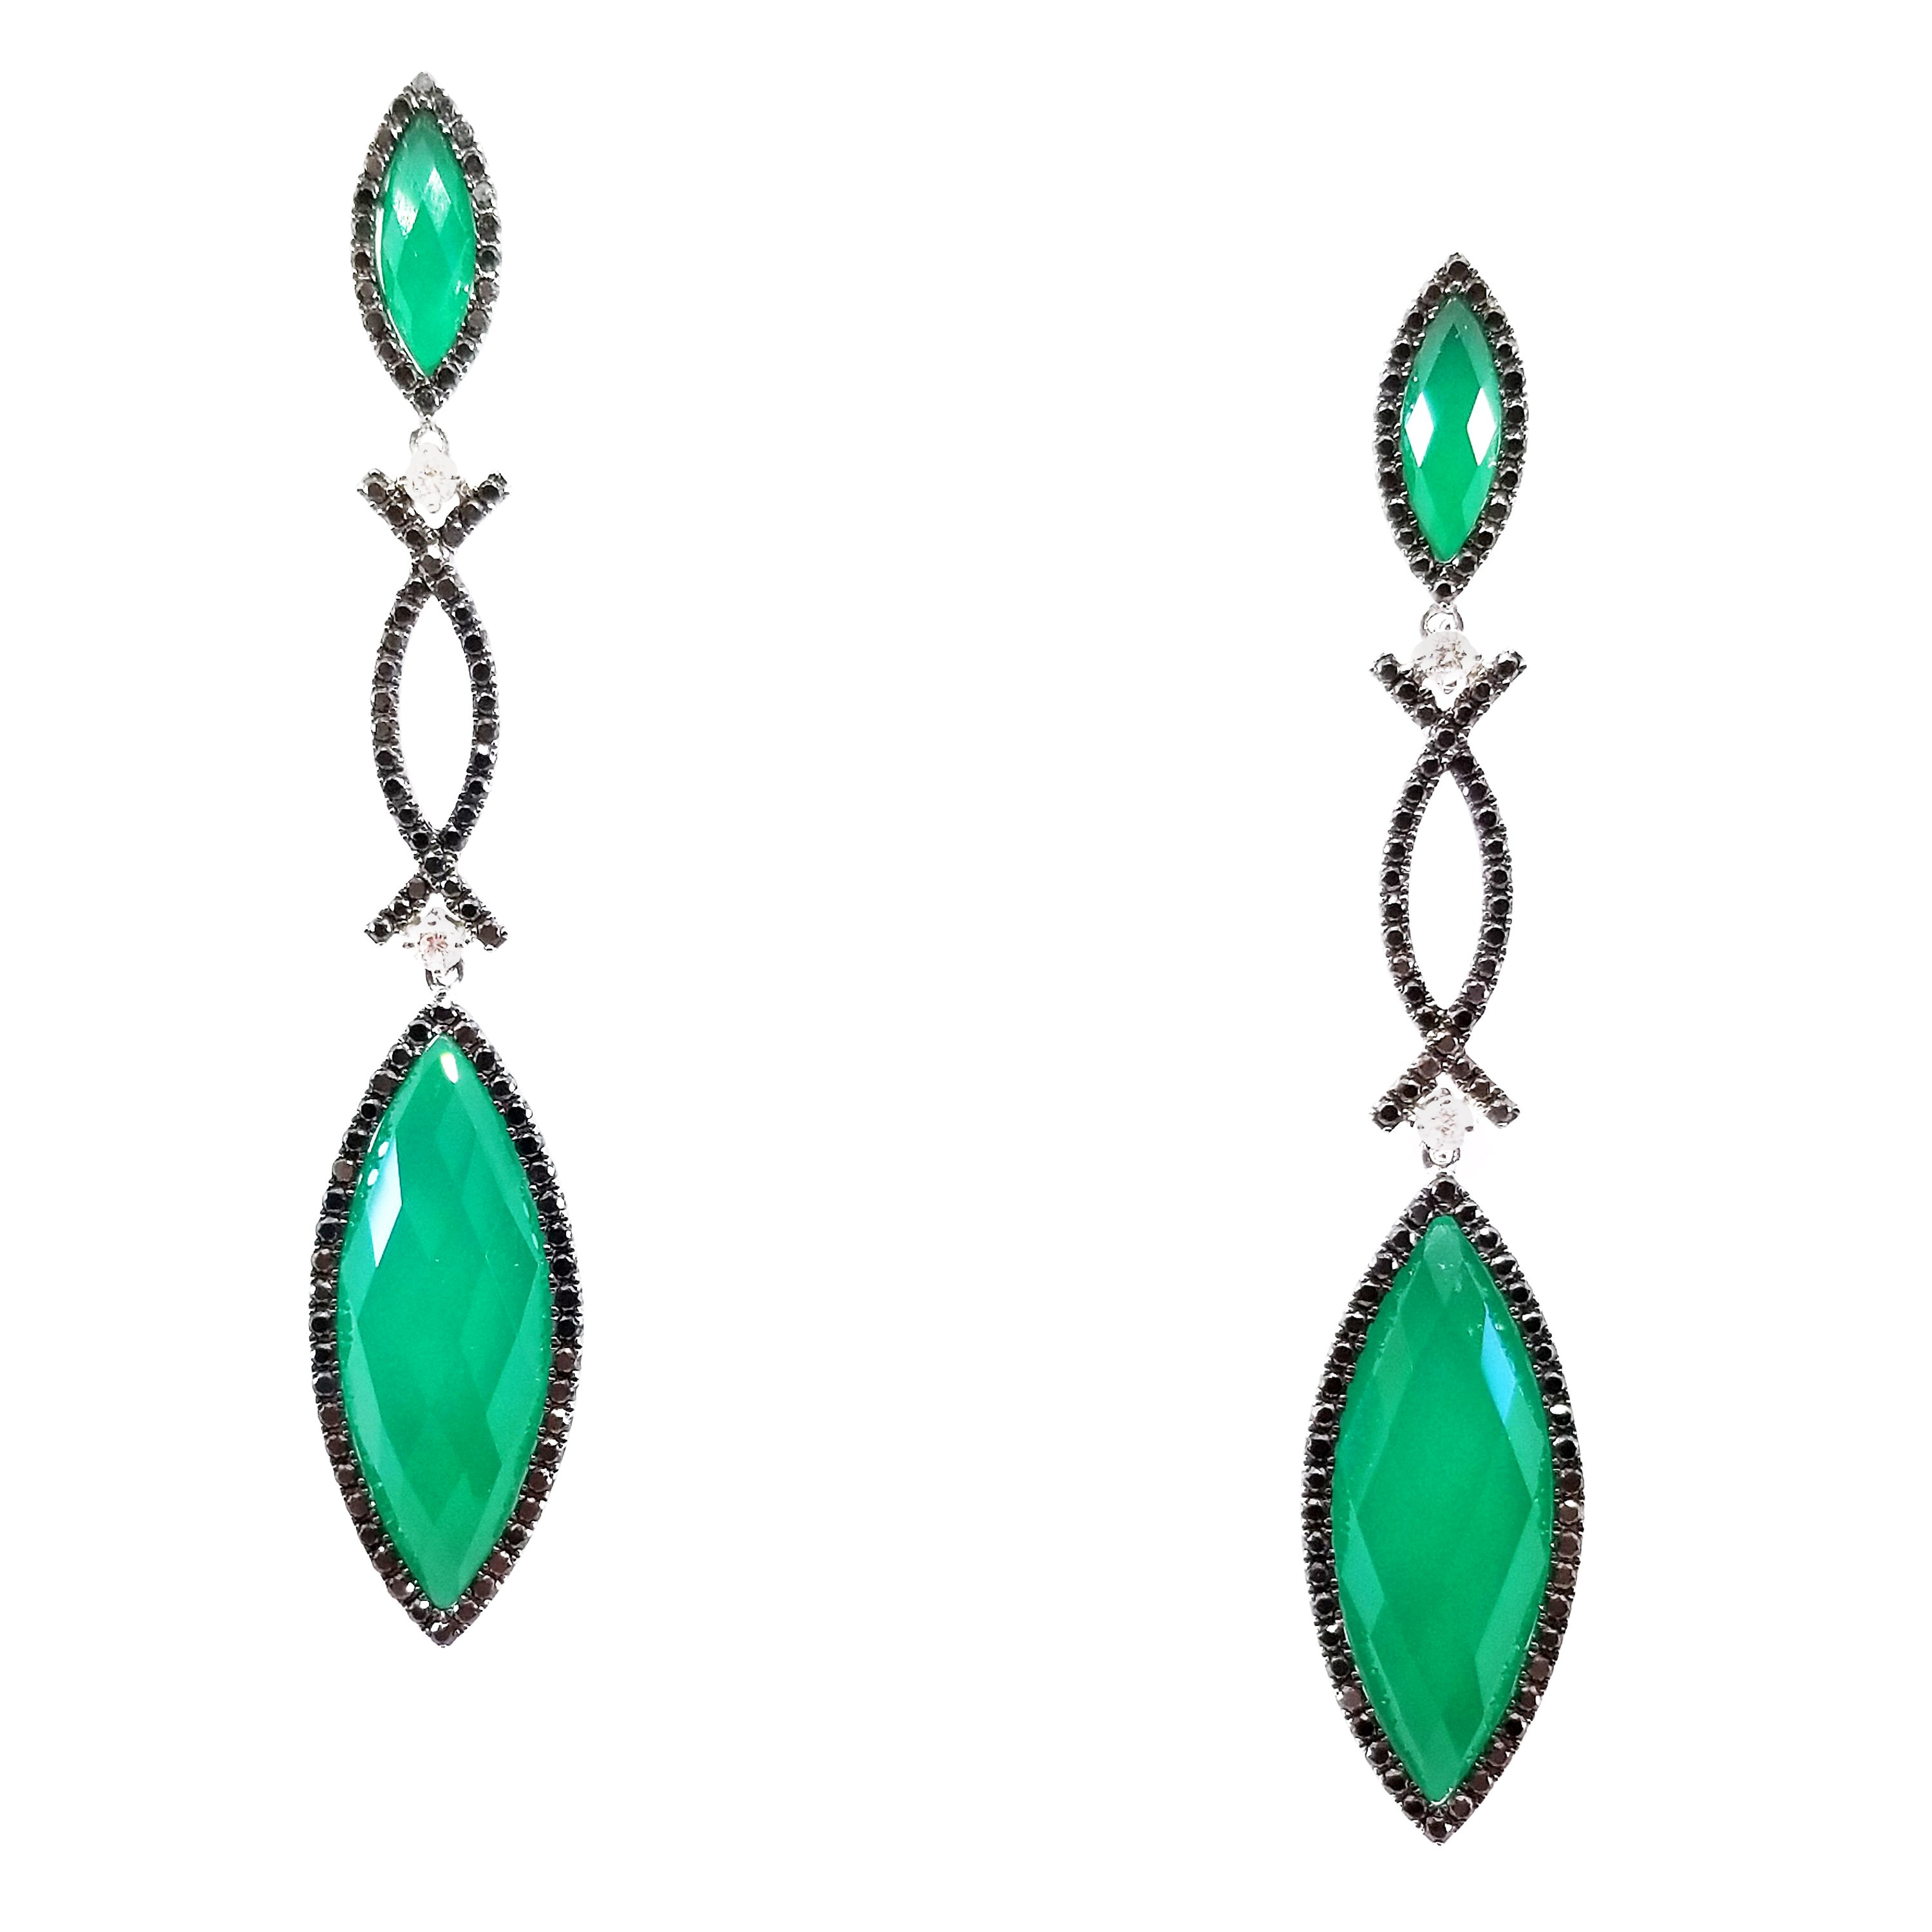 Green Agate White Topaz White and Black Diamond Drop Earrings 18 Karat White